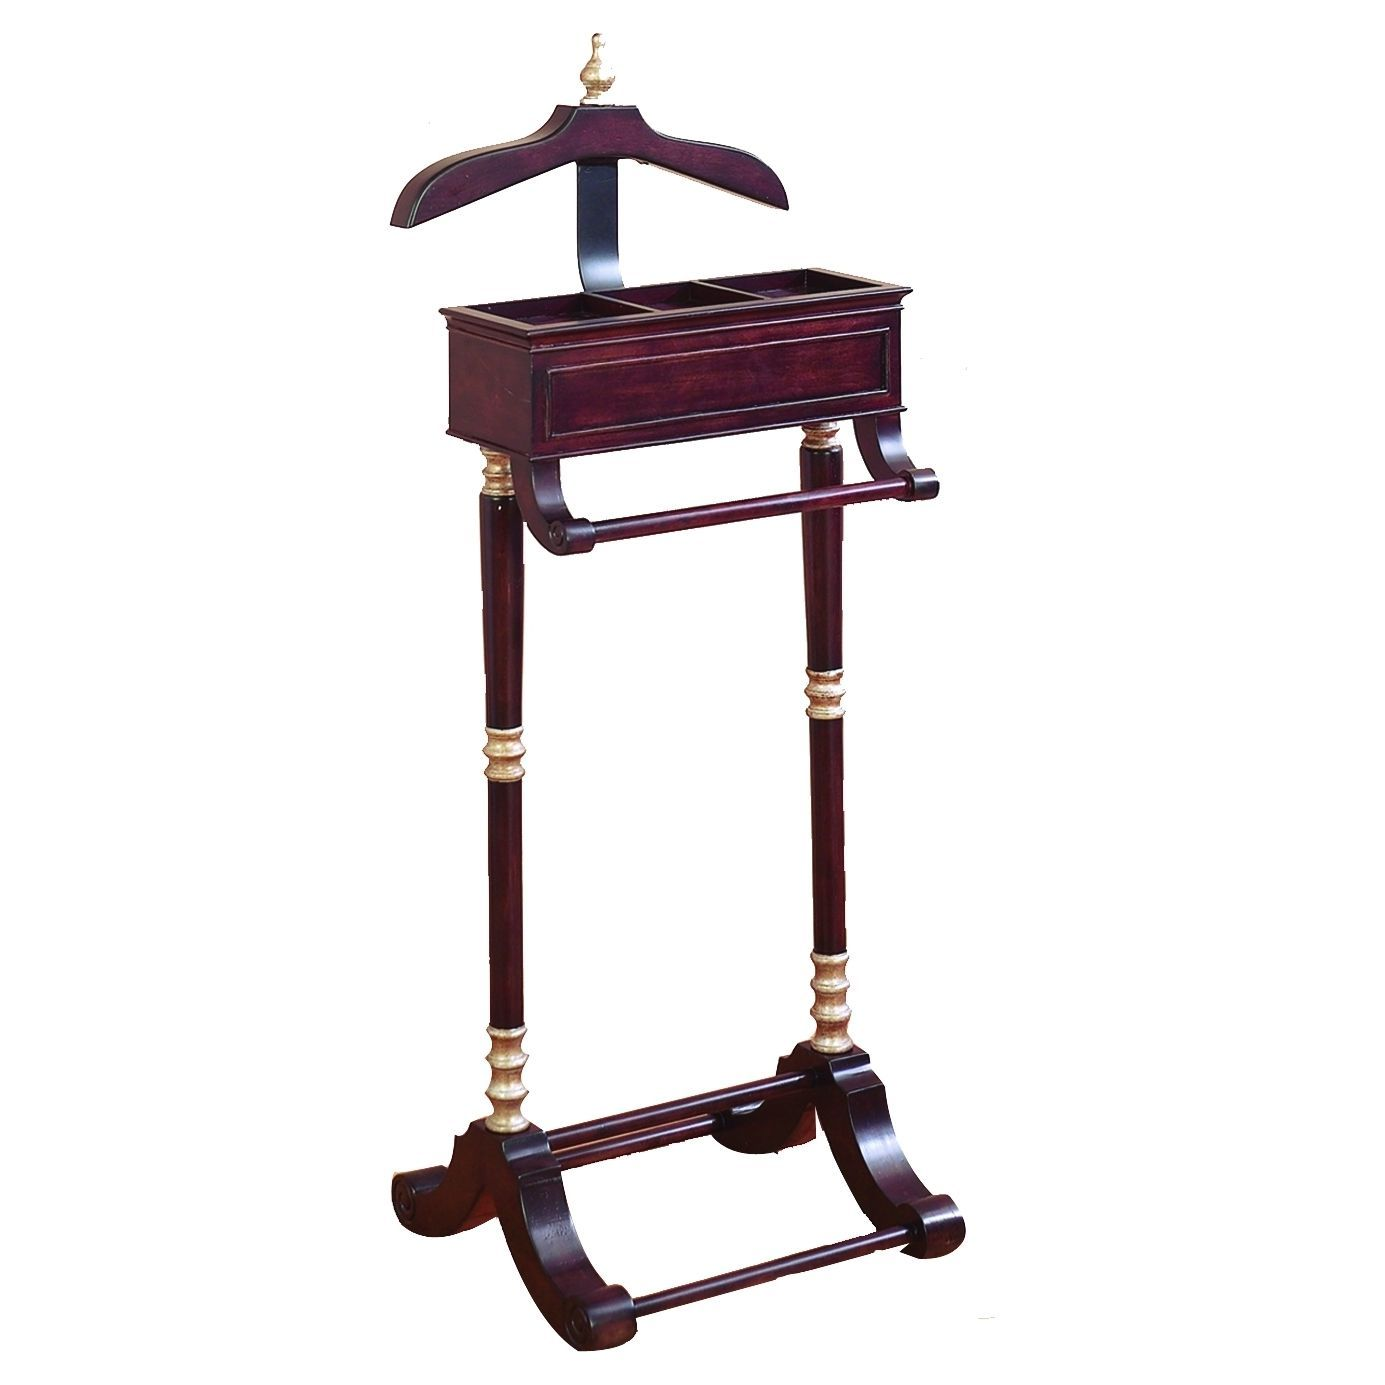 Wood Metal Valet Rack Can Be Placed Anywhere (Rack), Purple